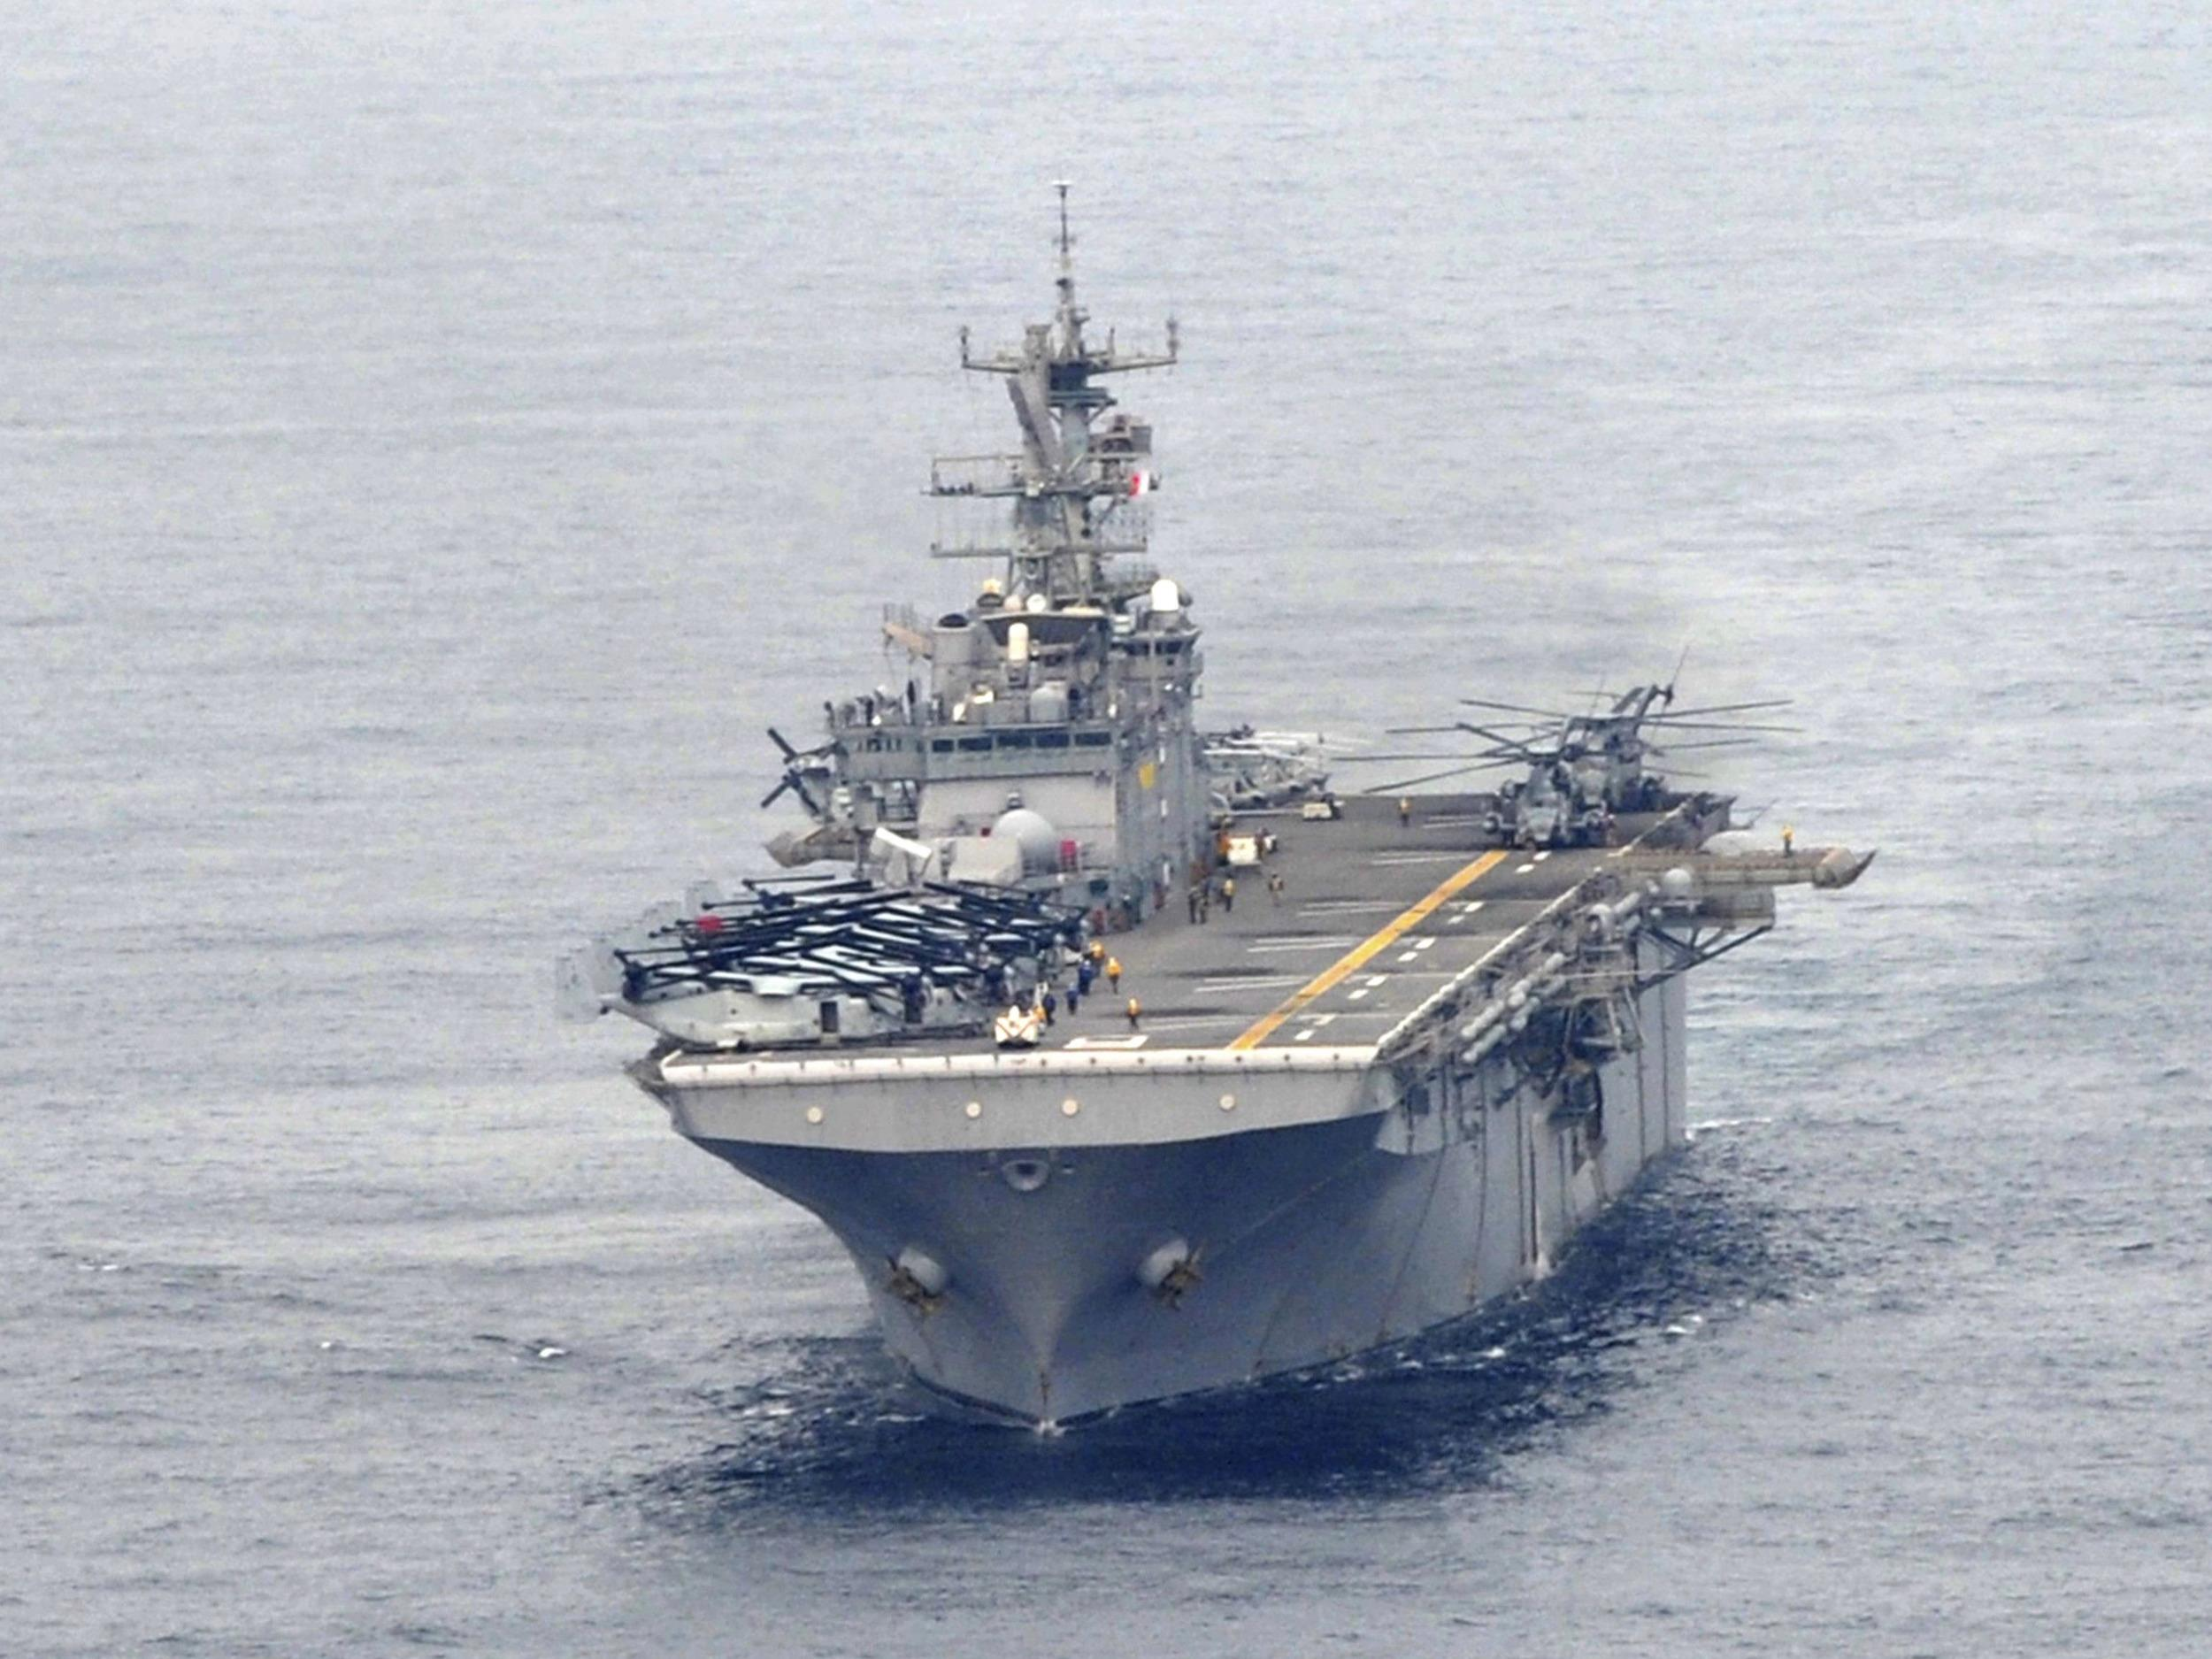 Image: The USS Bonhomme Richard LHD 6 sails in the sea off Pohang